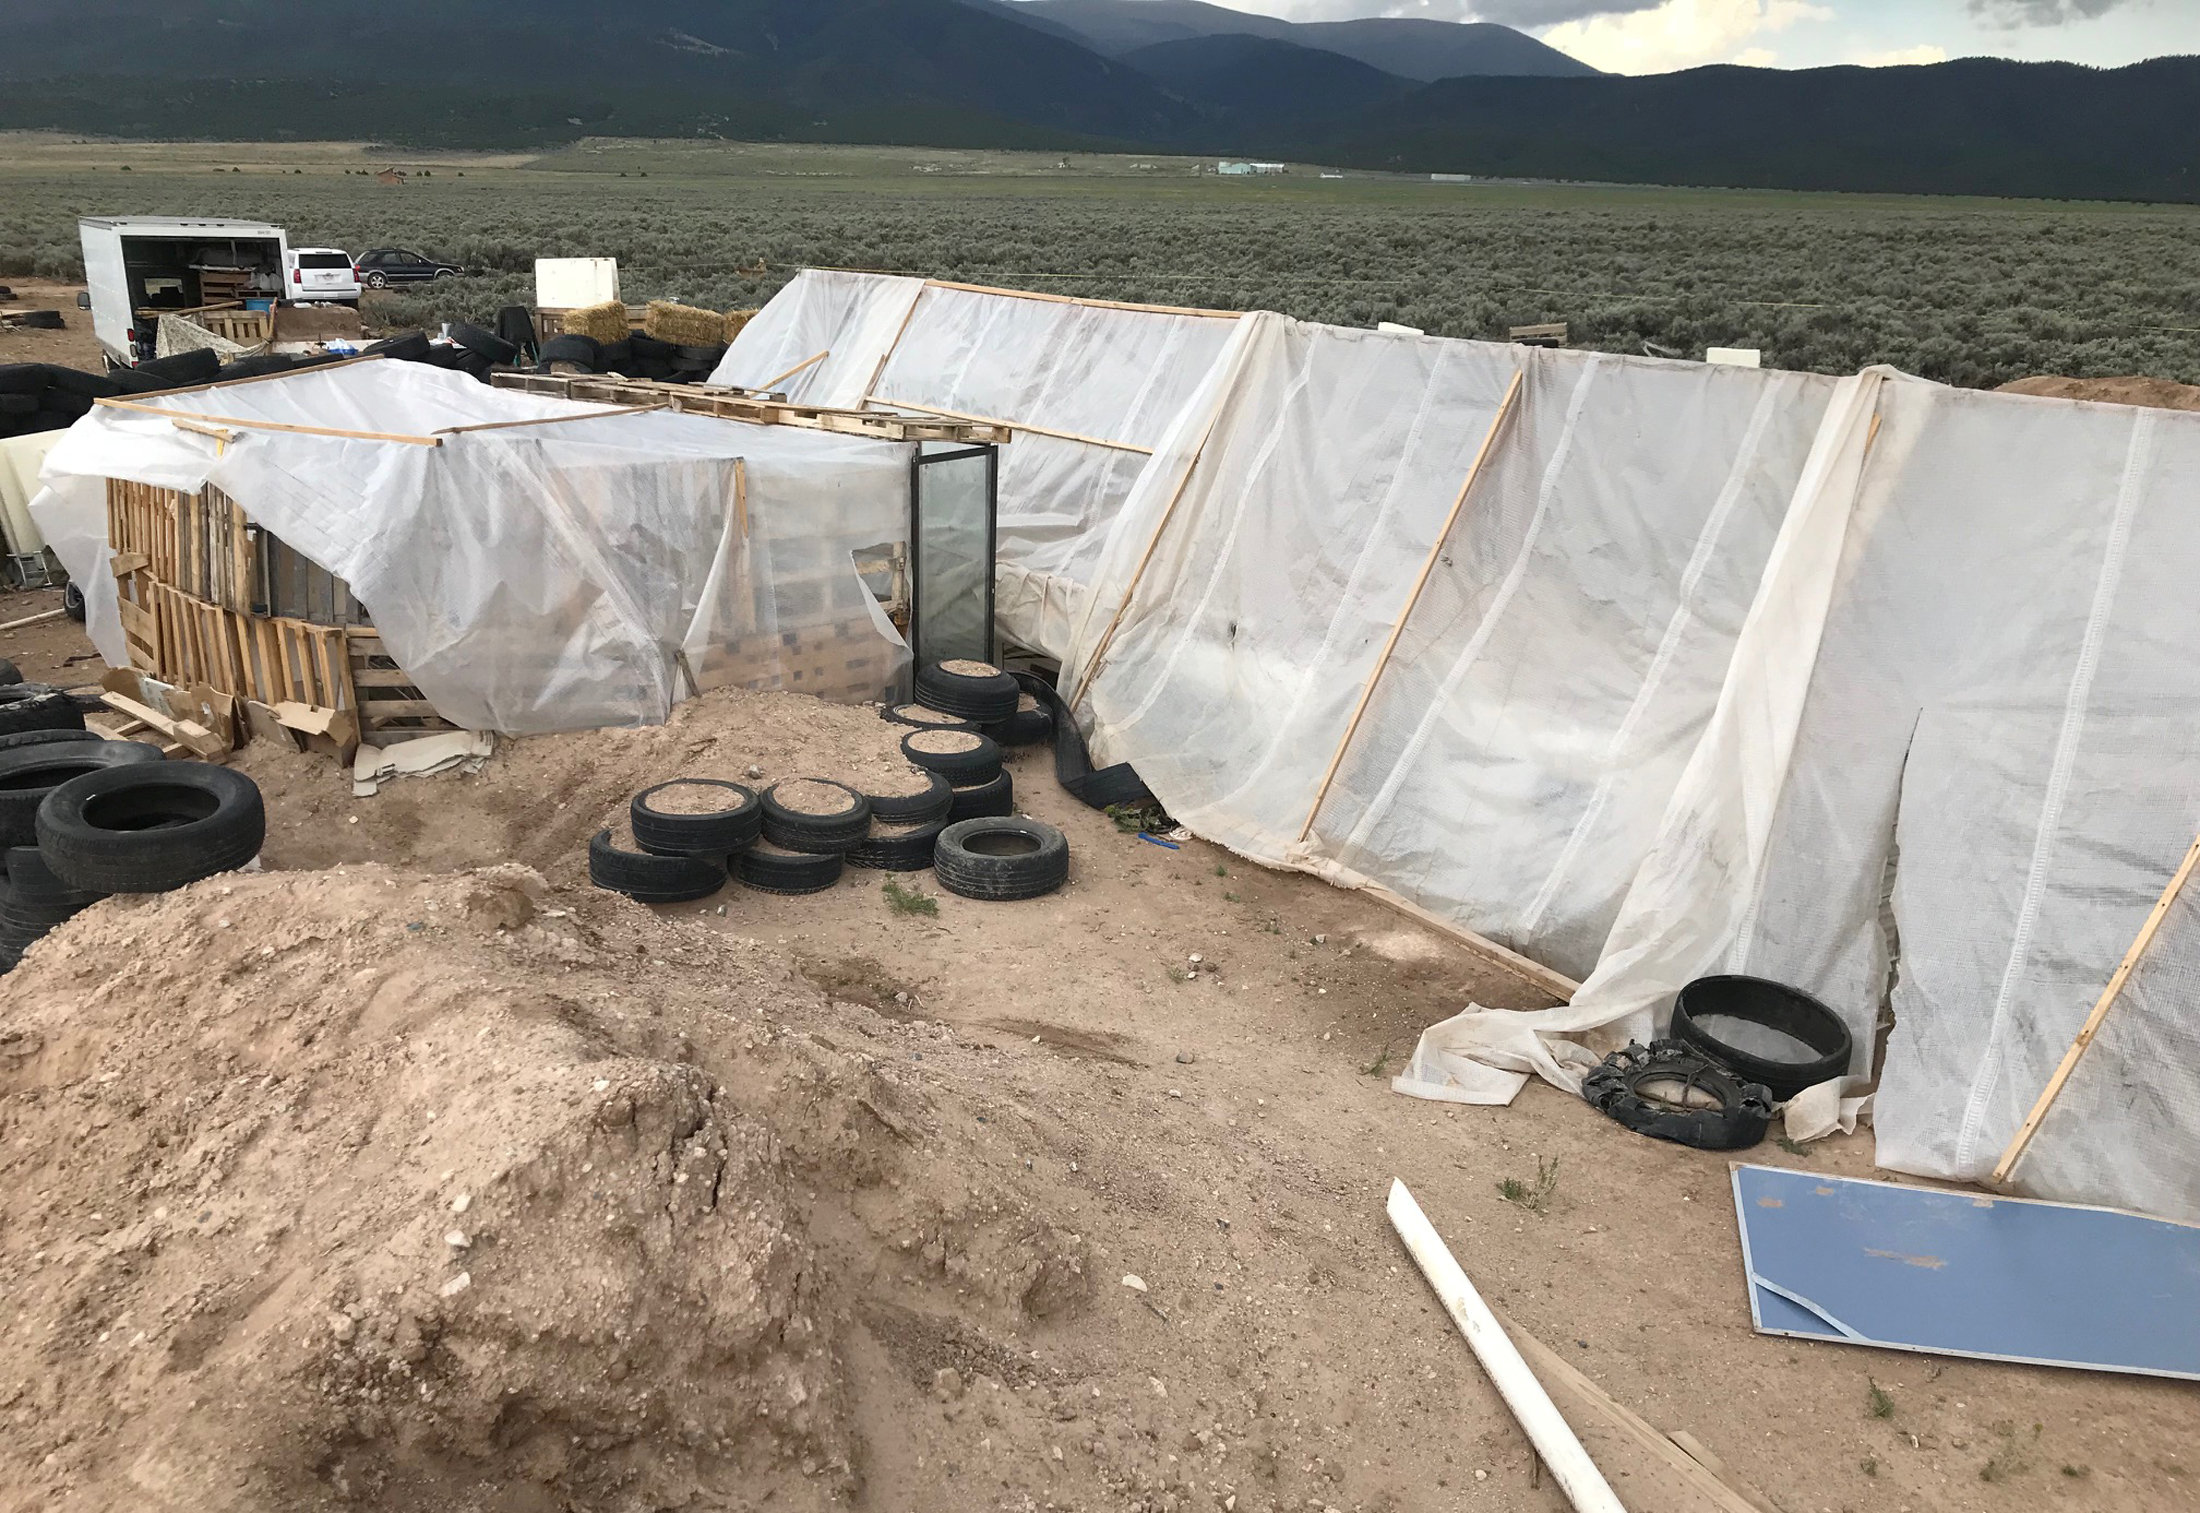 The compound where 11 children were taken in protective custody after a raid by authorities near Amalia, New Mexico